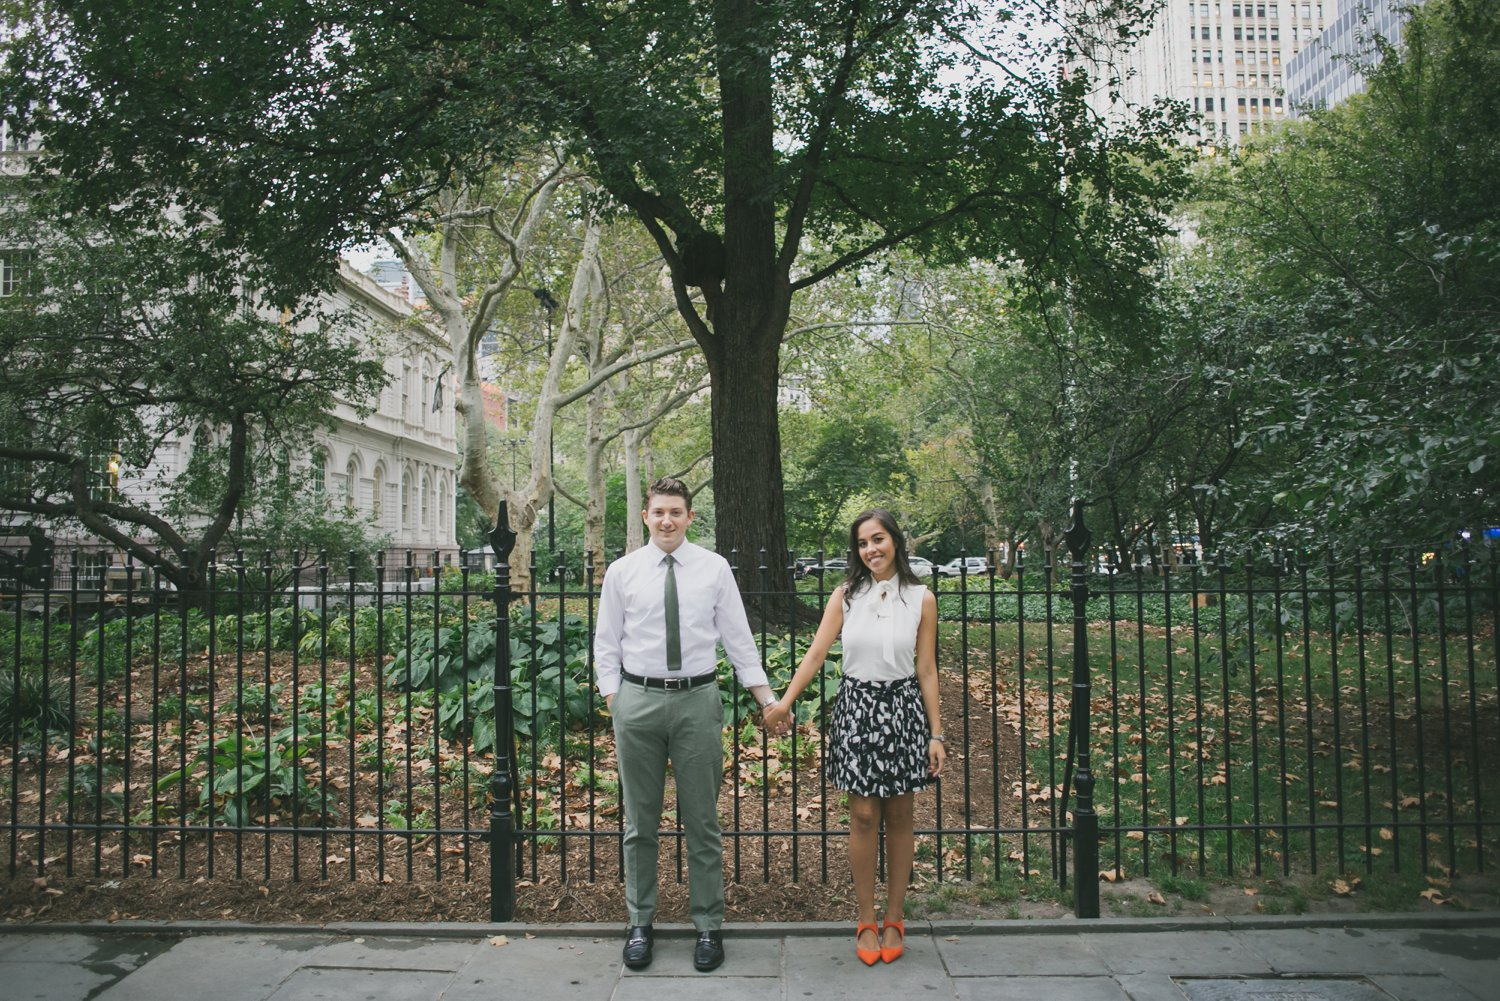 19NYC-NJ-ENGAGEMENT-PHOTOGRAPHY-BY-INTOTHESTORY-MOO-JAE.JPG